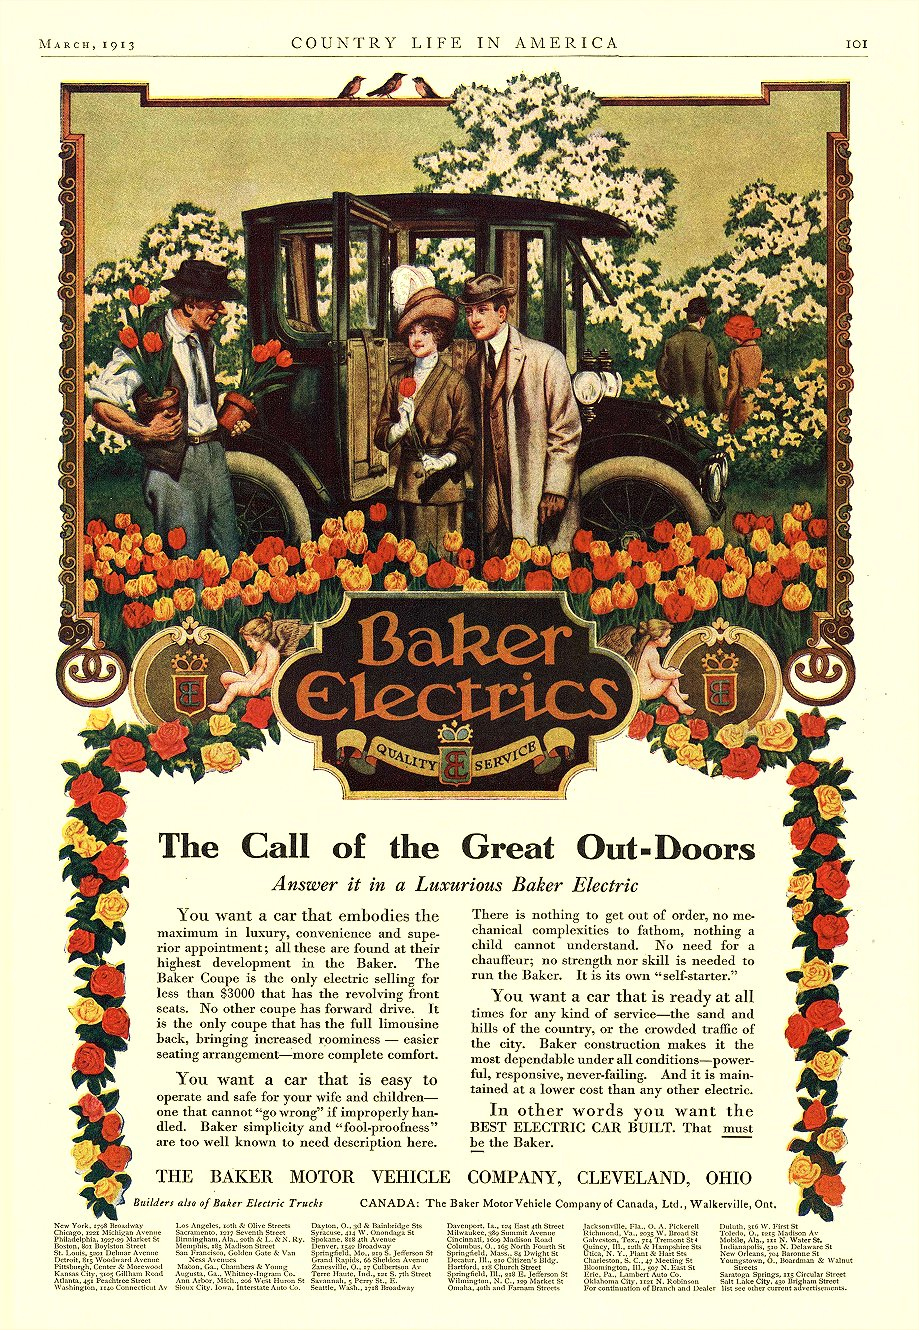 1913 3 BAKER Electric The Call of the Great Out-Doors THE BAKER MOTOR VEHICLE COMPANY Cleveland, OHIO COUNTRY LIFE IN AMERICA March 1913 9.5″x14.25″ page 101